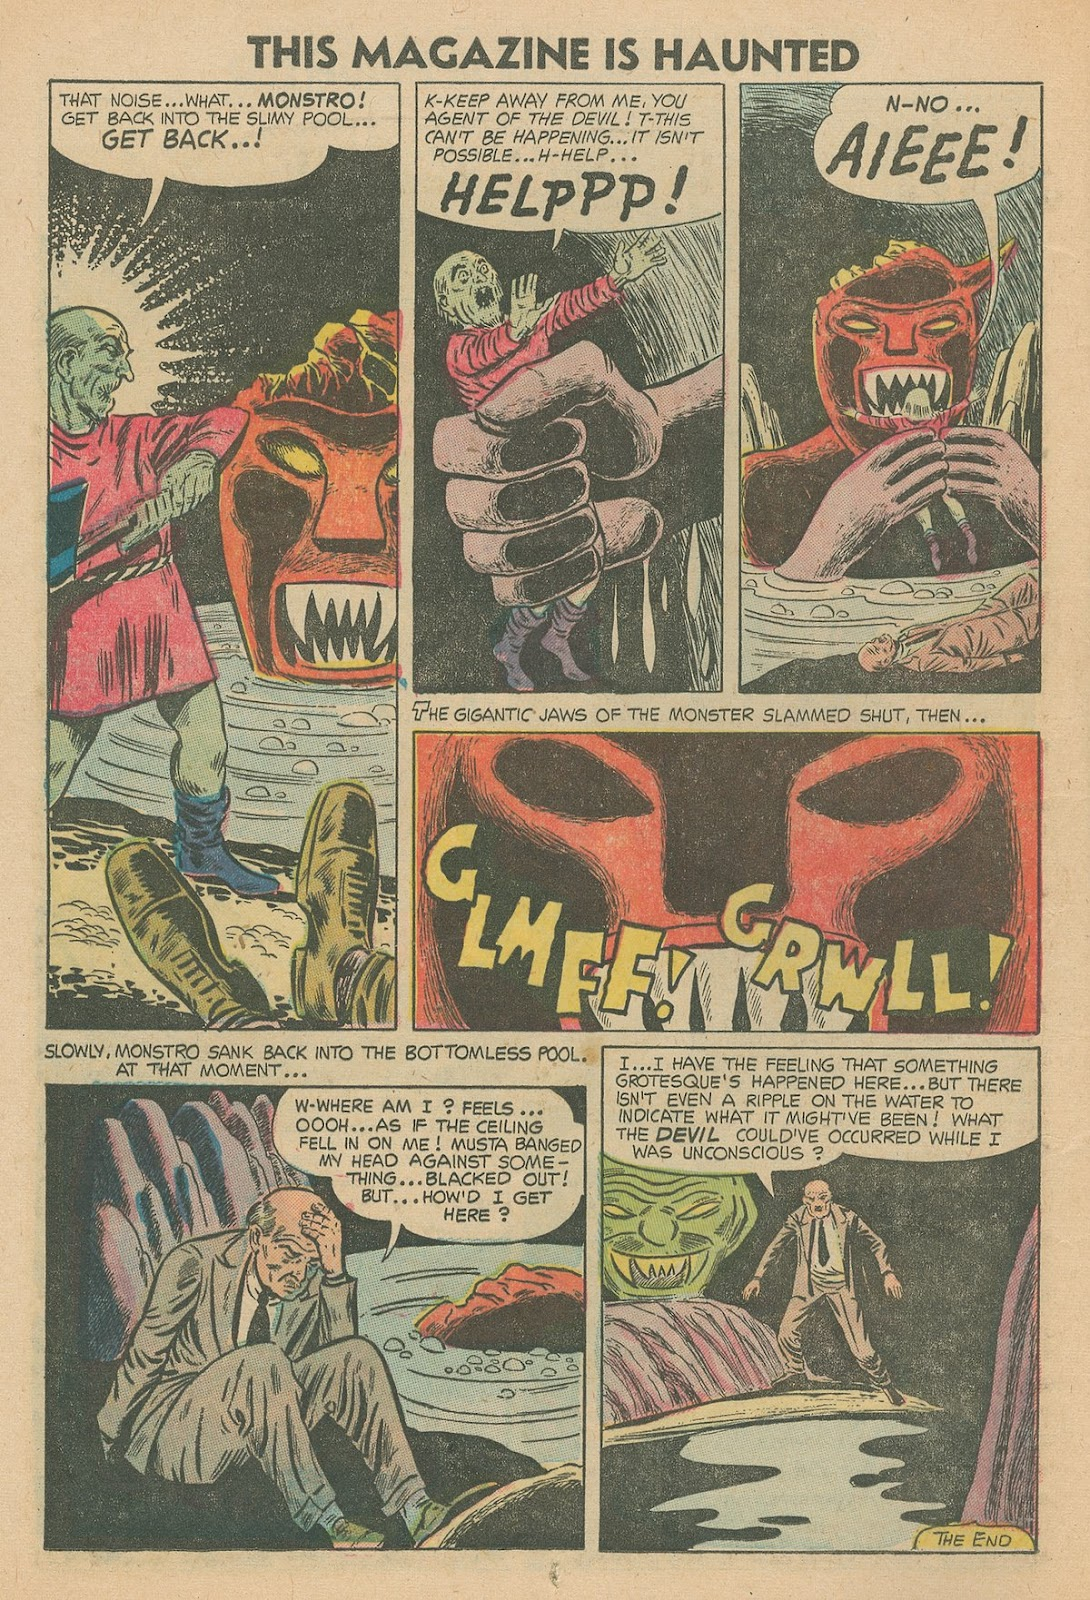 Read online This Magazine Is Haunted comic -  Issue #21 - 12